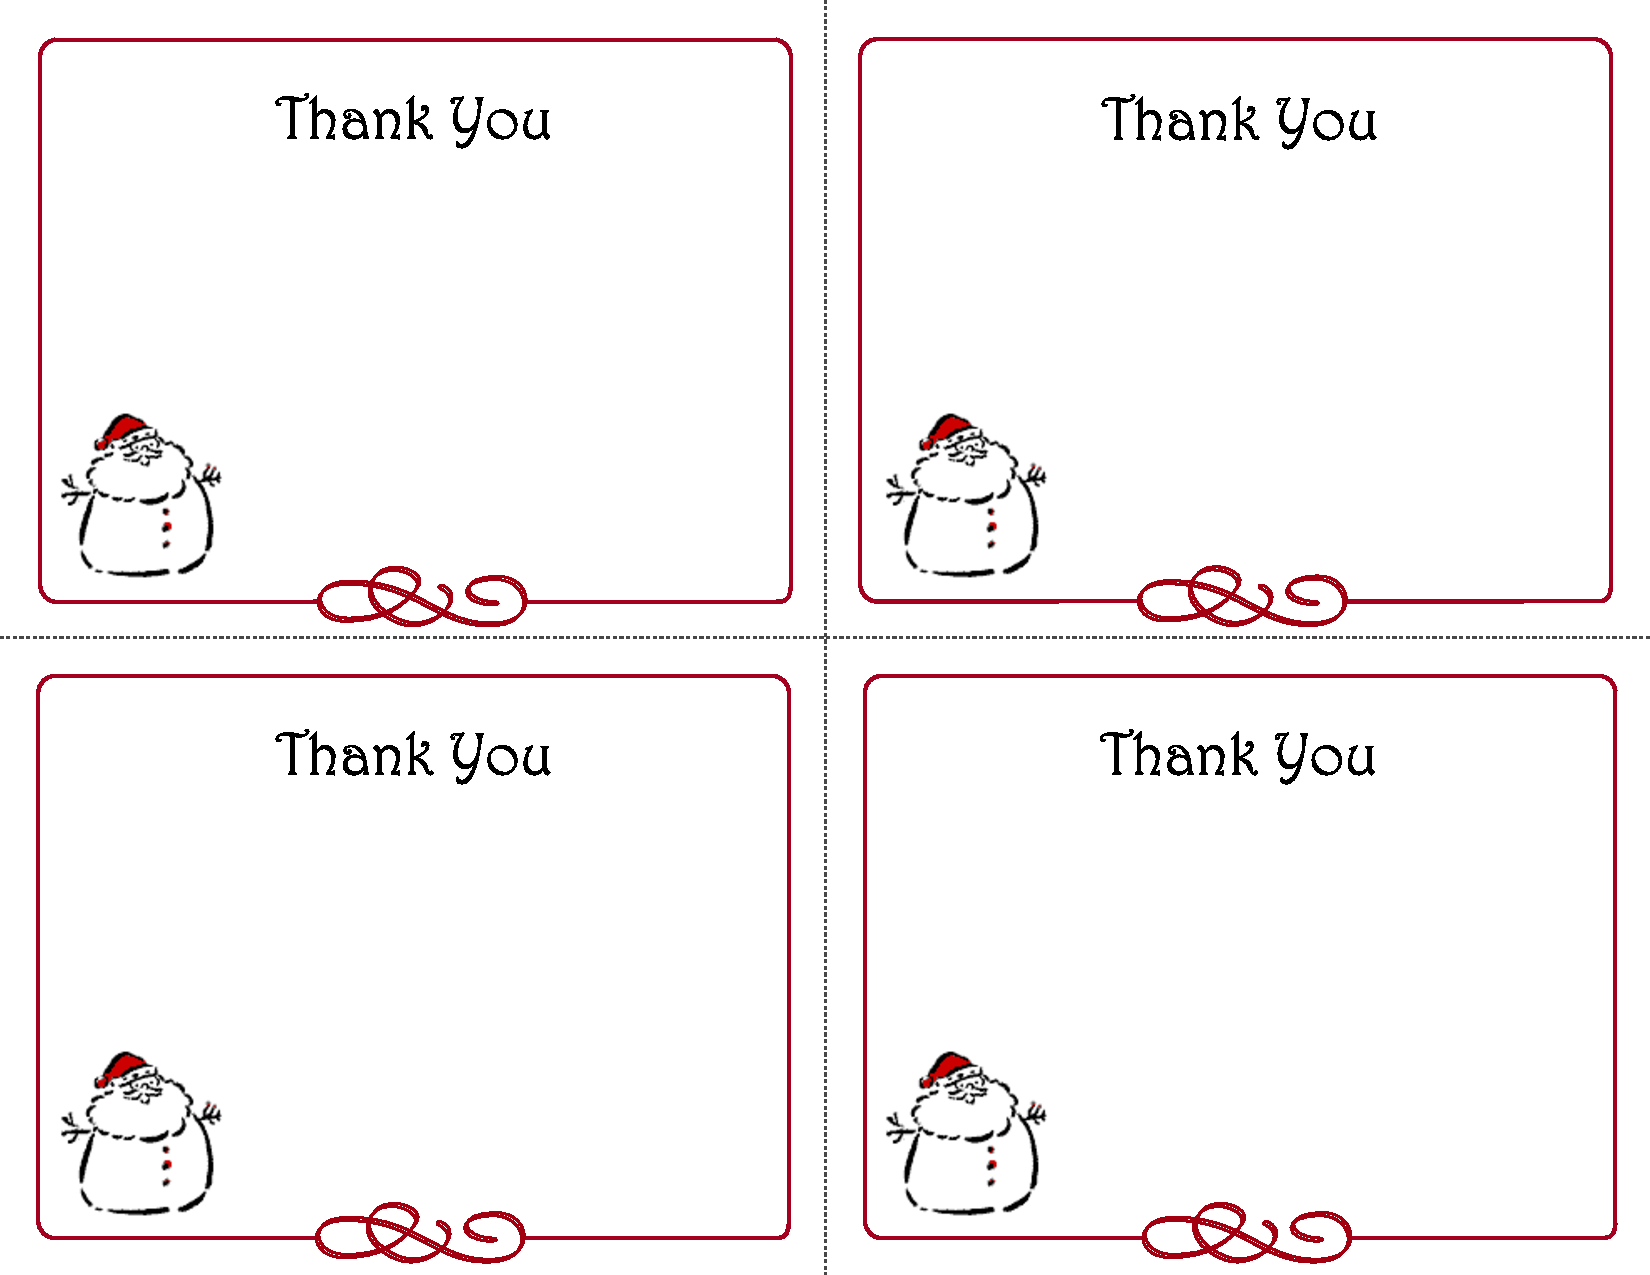 Free Thank You Cards Printable | Free Printable Holiday Gift Inside Thank You Note Cards Template